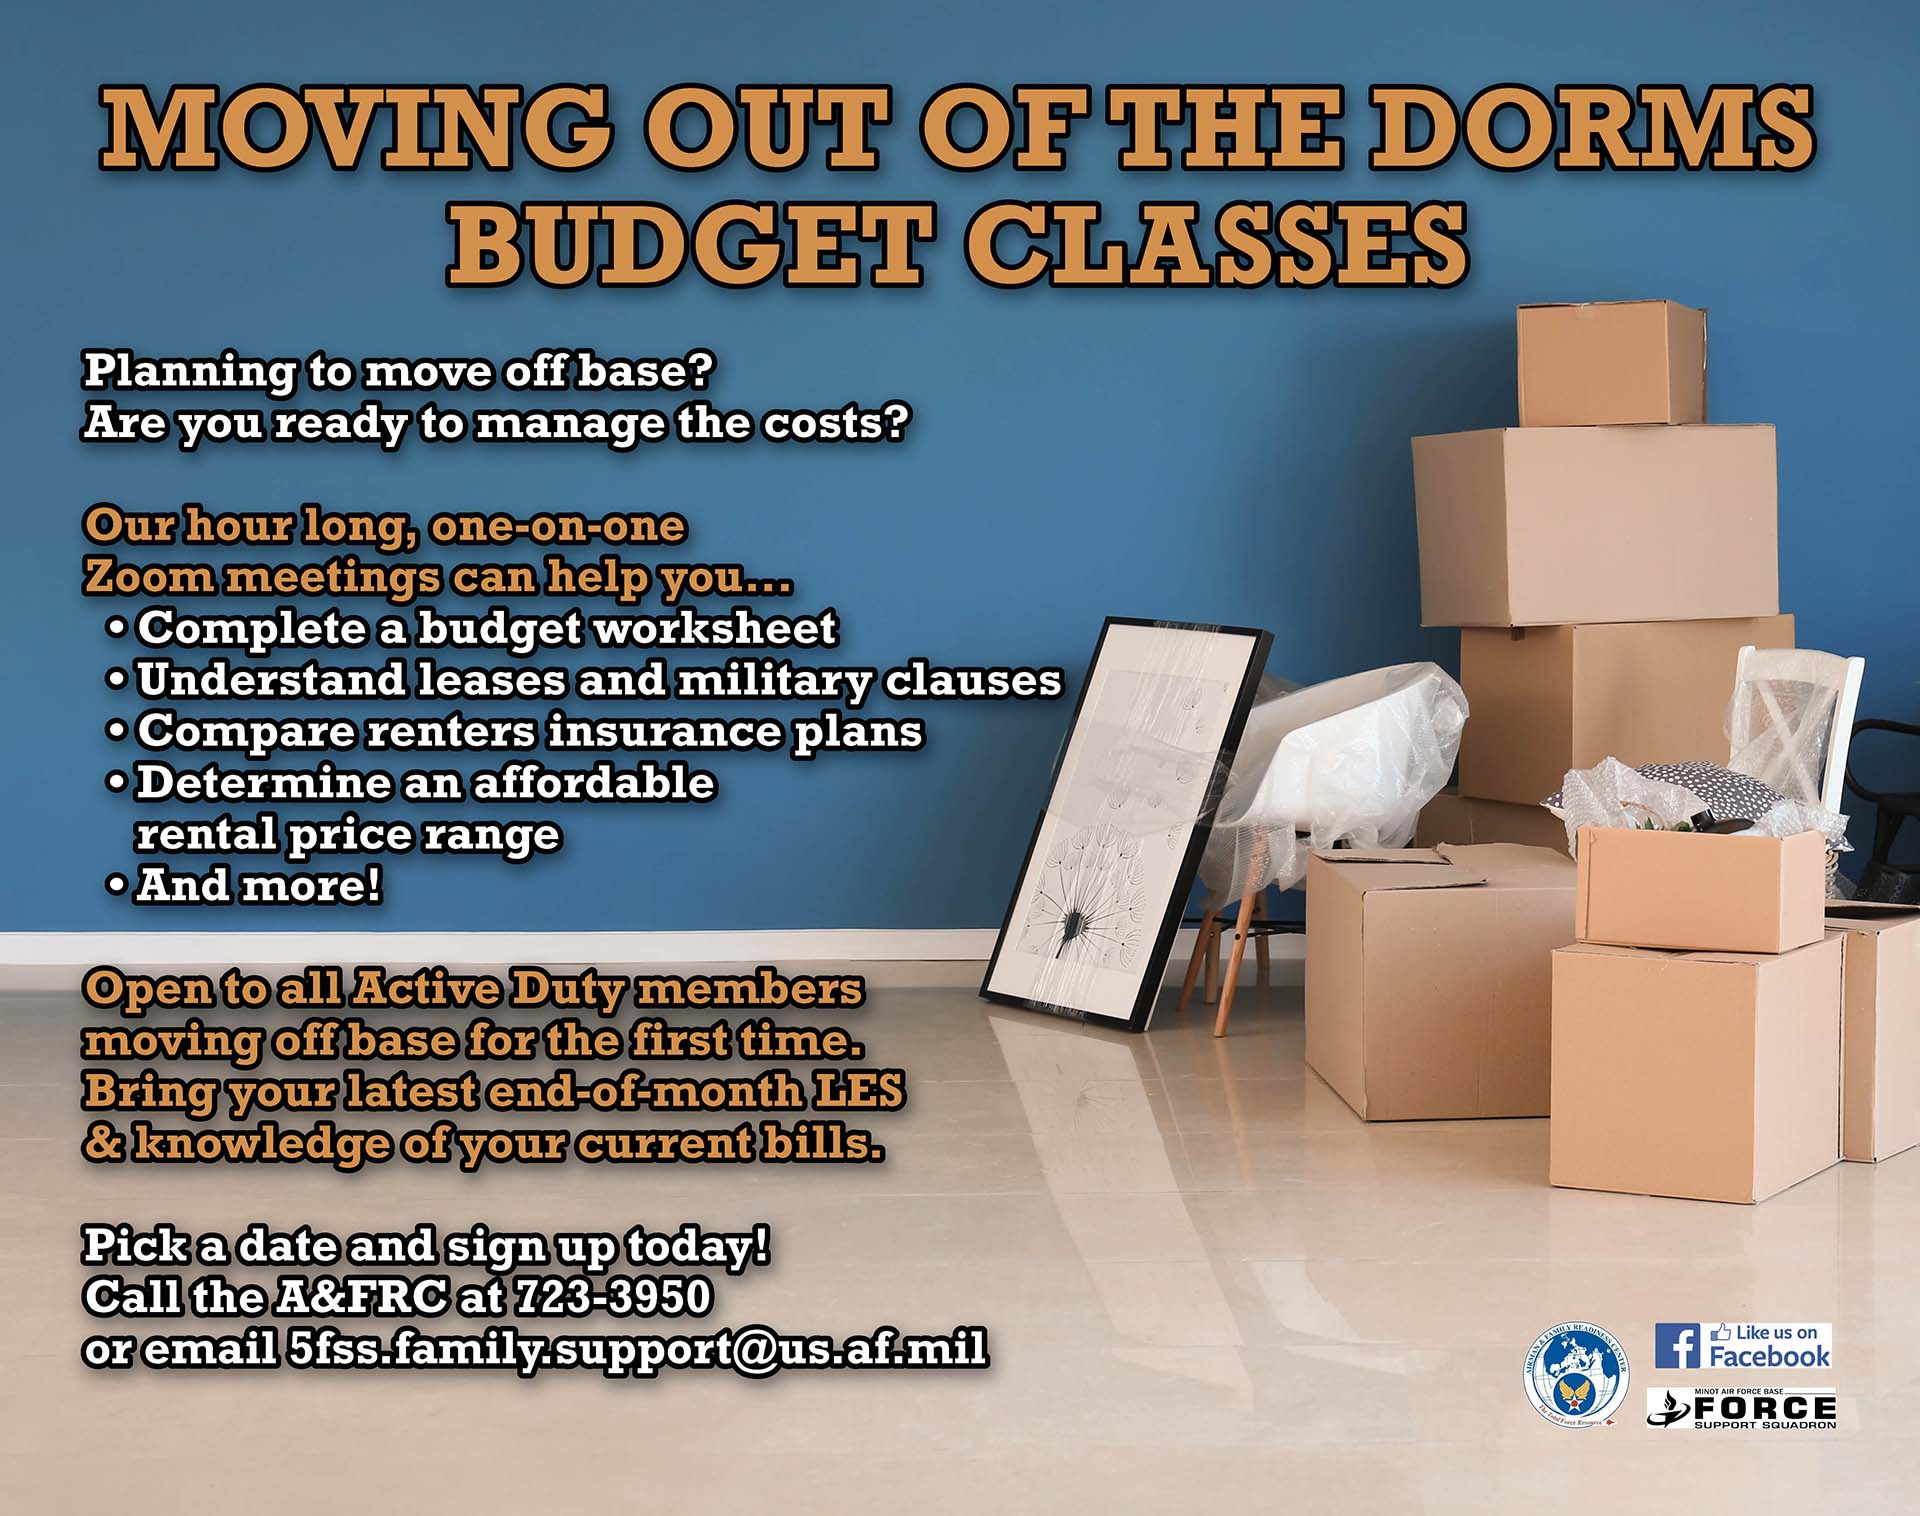 Moving Out of the Dorms Budget Classes